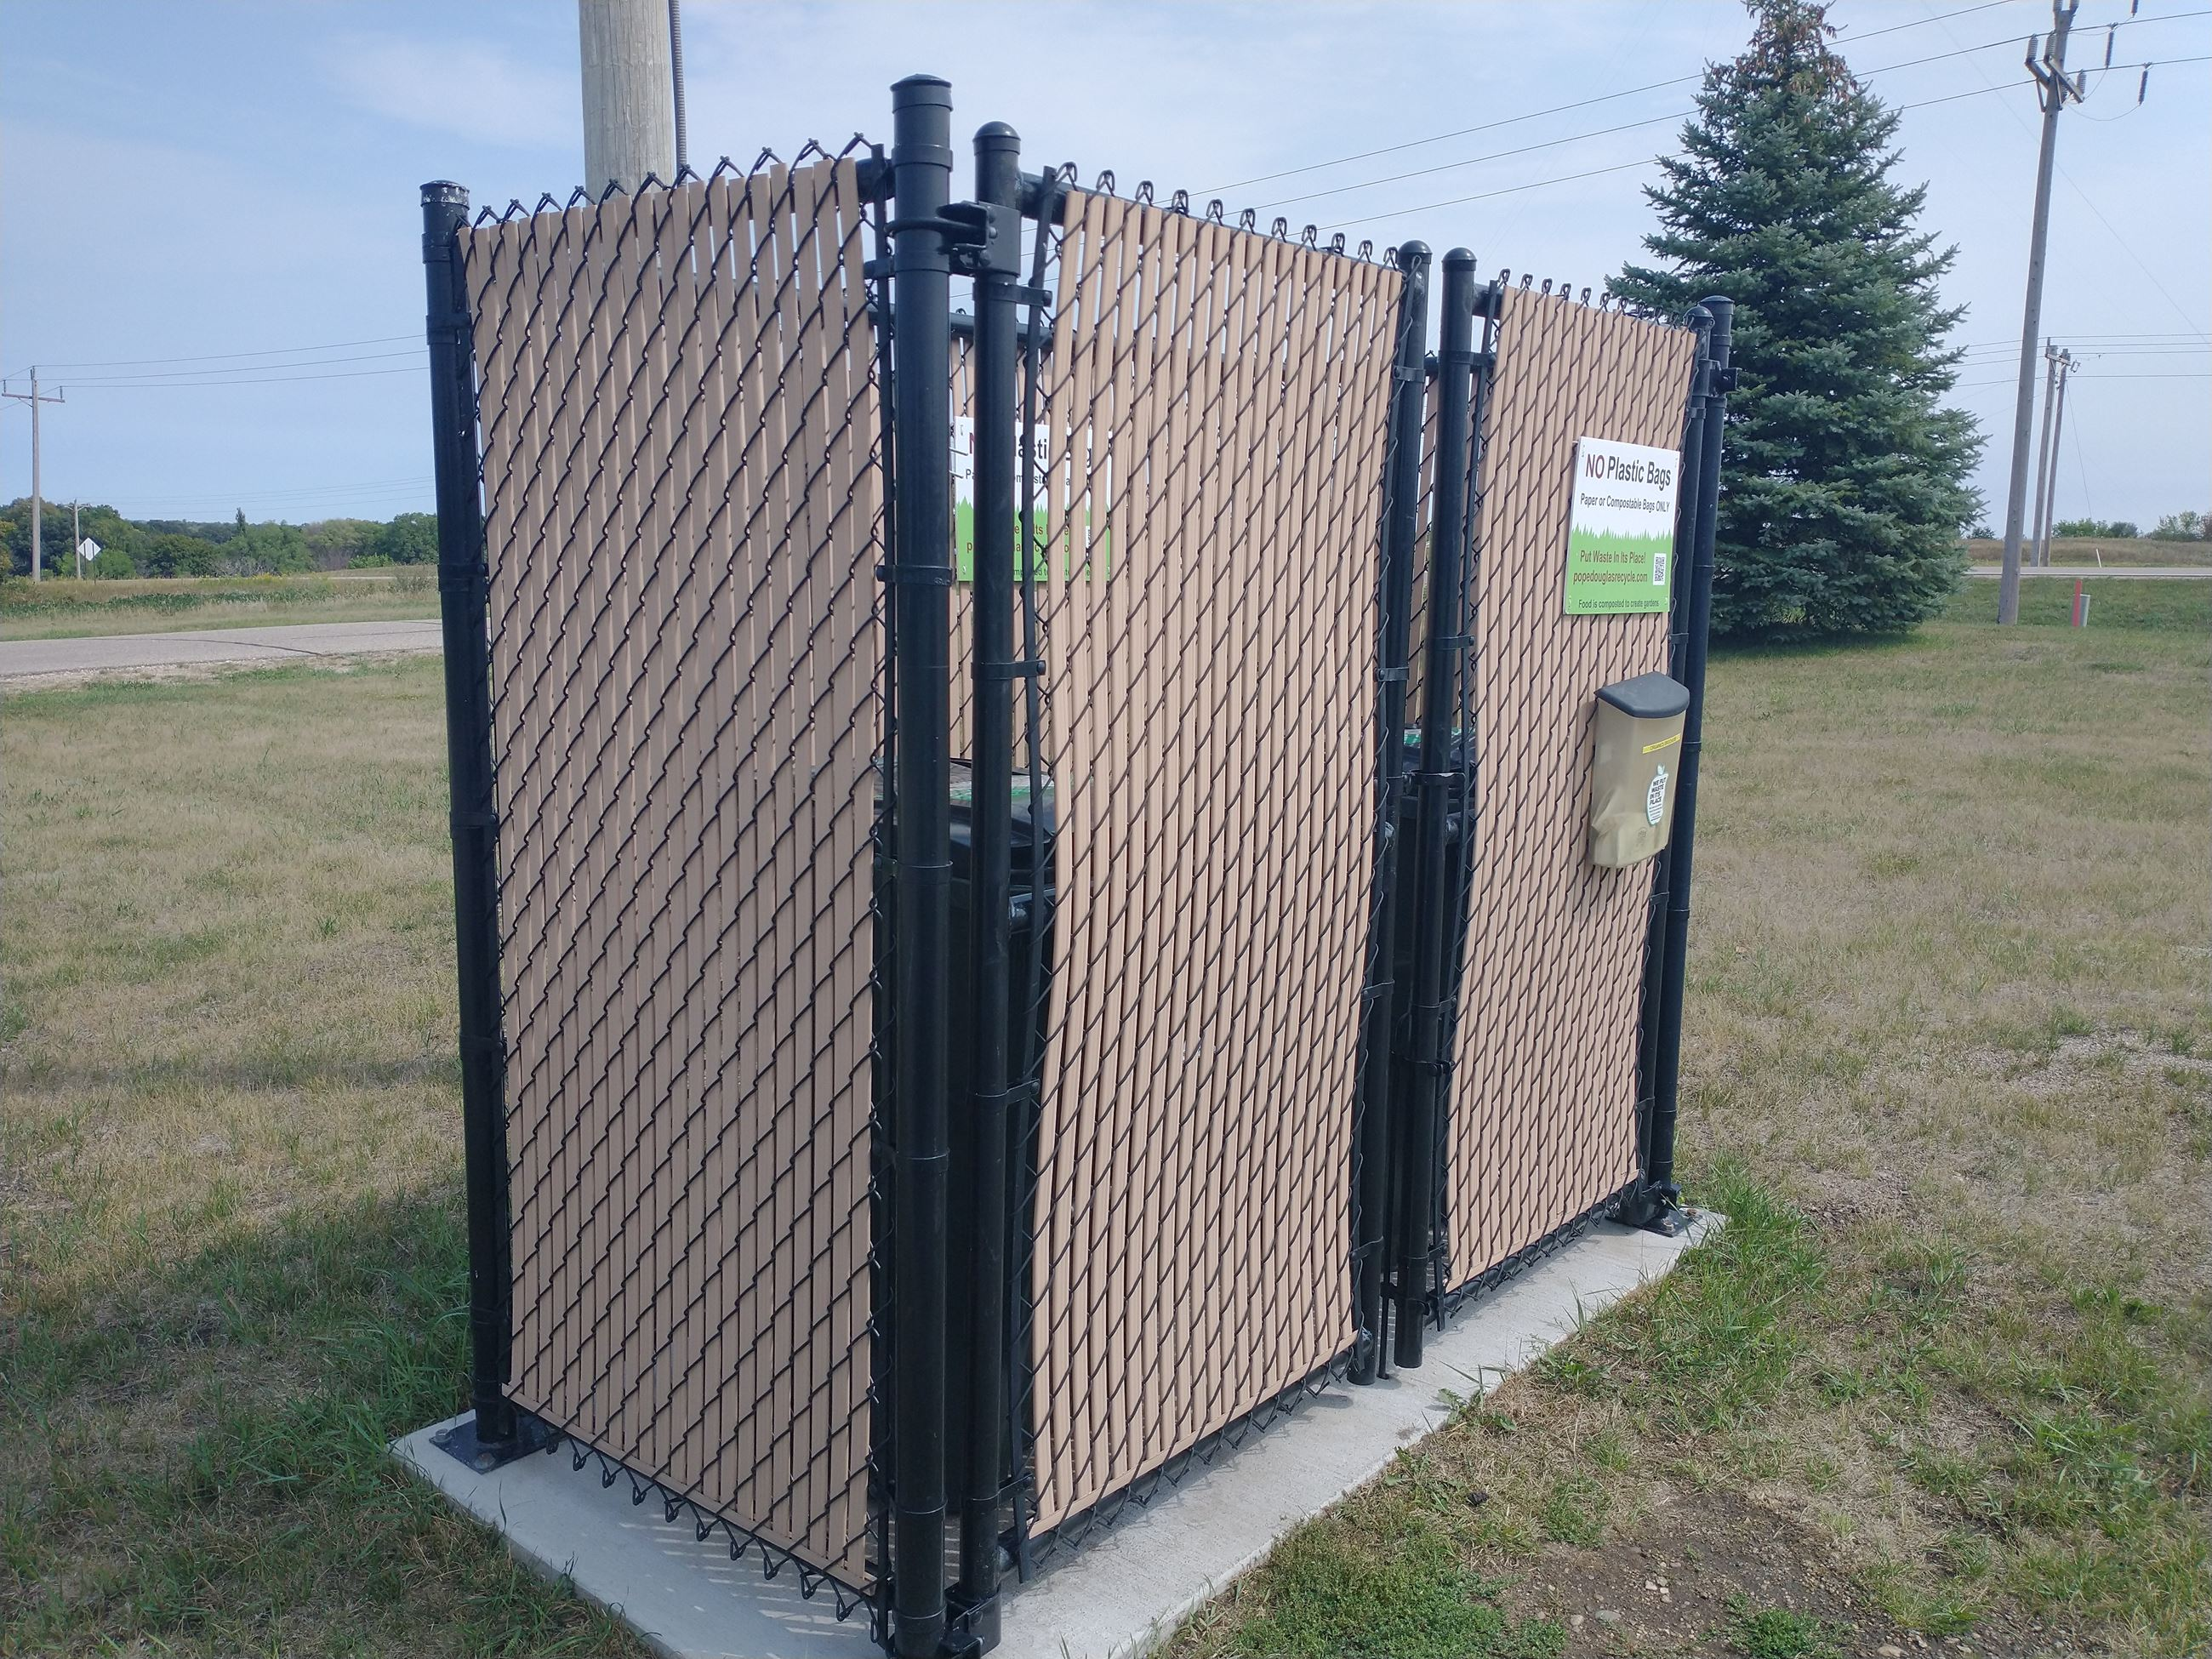 A tall brown fence structure sits on a concrete slab, inside the fence gate are two organics carts.